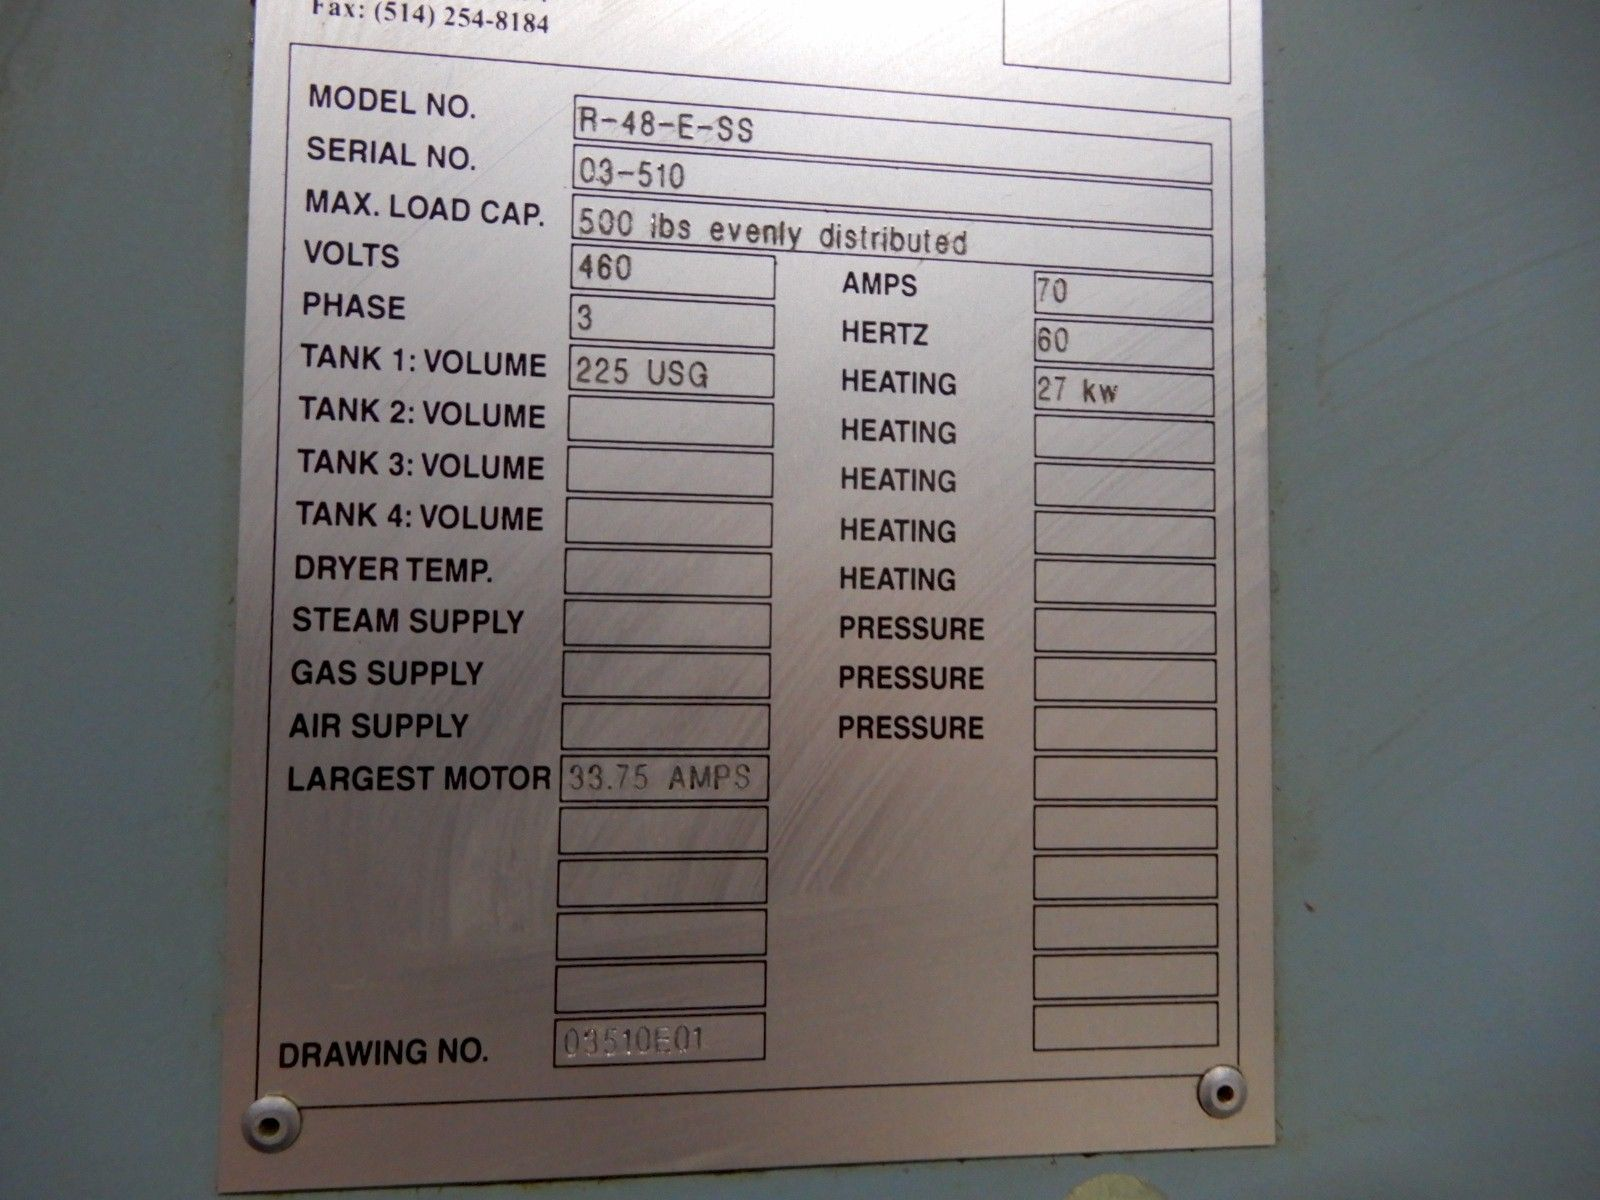 """PROCECO TYPHOON ROTARY PARTS WASHER, Model R-48-E-SS, 2 Stage, 10""""x18"""" Max Part Capacity."""